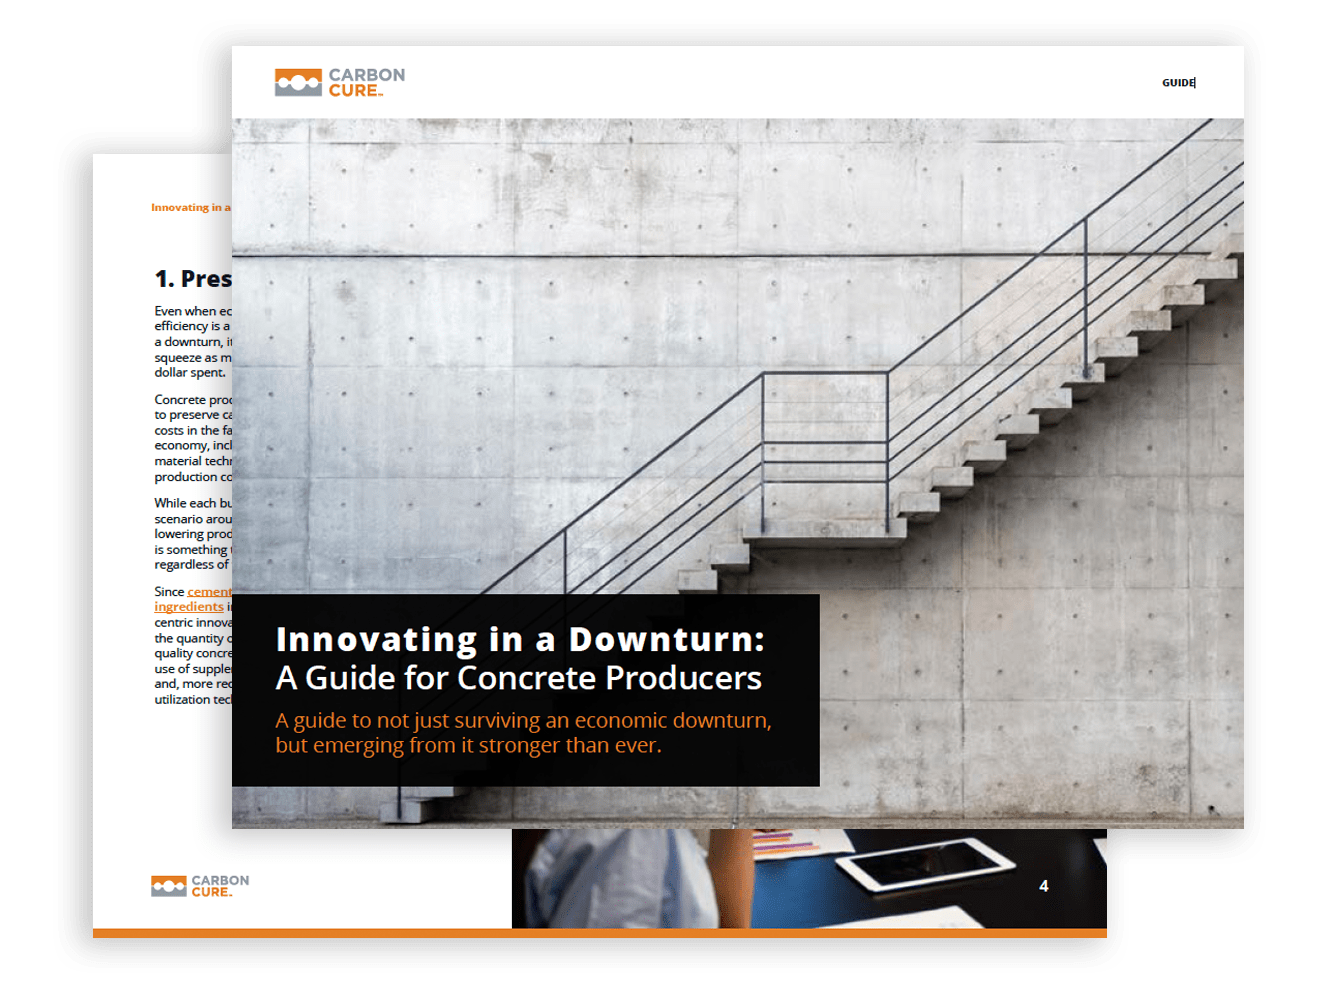 Innovating in a Downturn:  A Guide for Concrete Producers